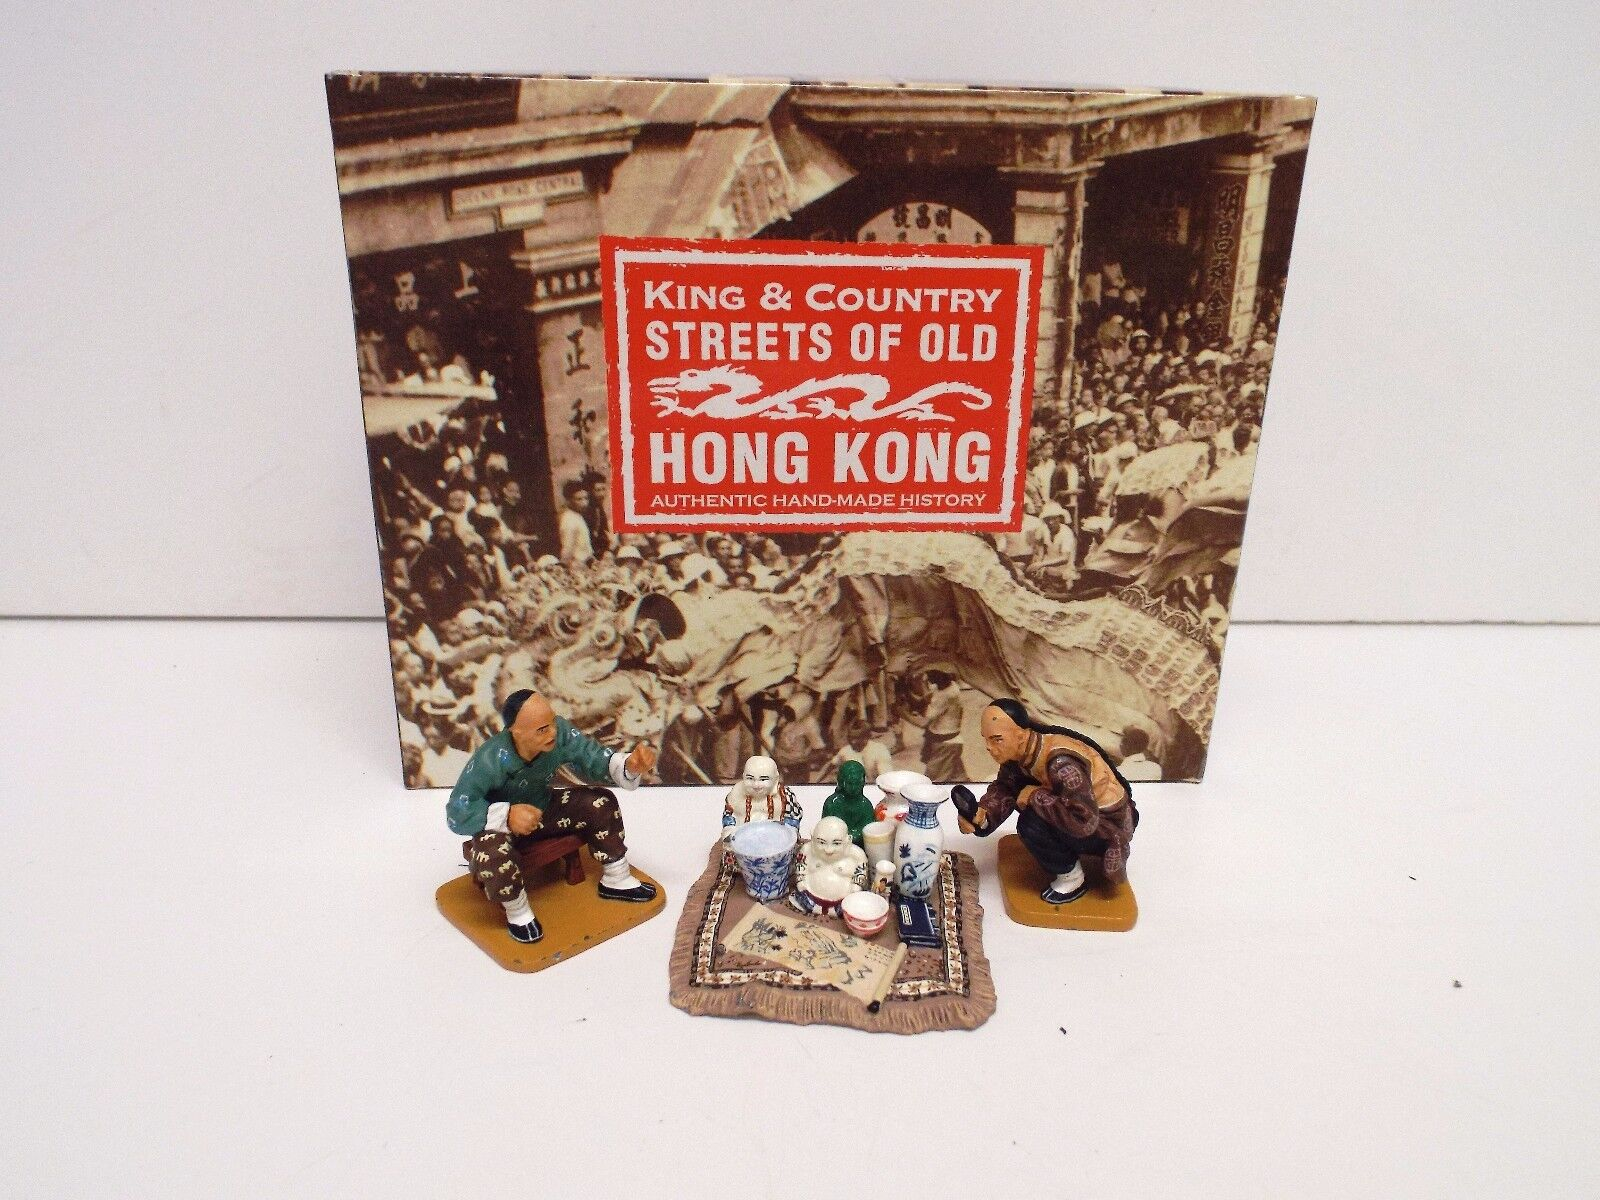 KING AND COUNTRY HK152M S.O.O.H.K CURIO SELLER SET RETIRED BOXED (BS2116)